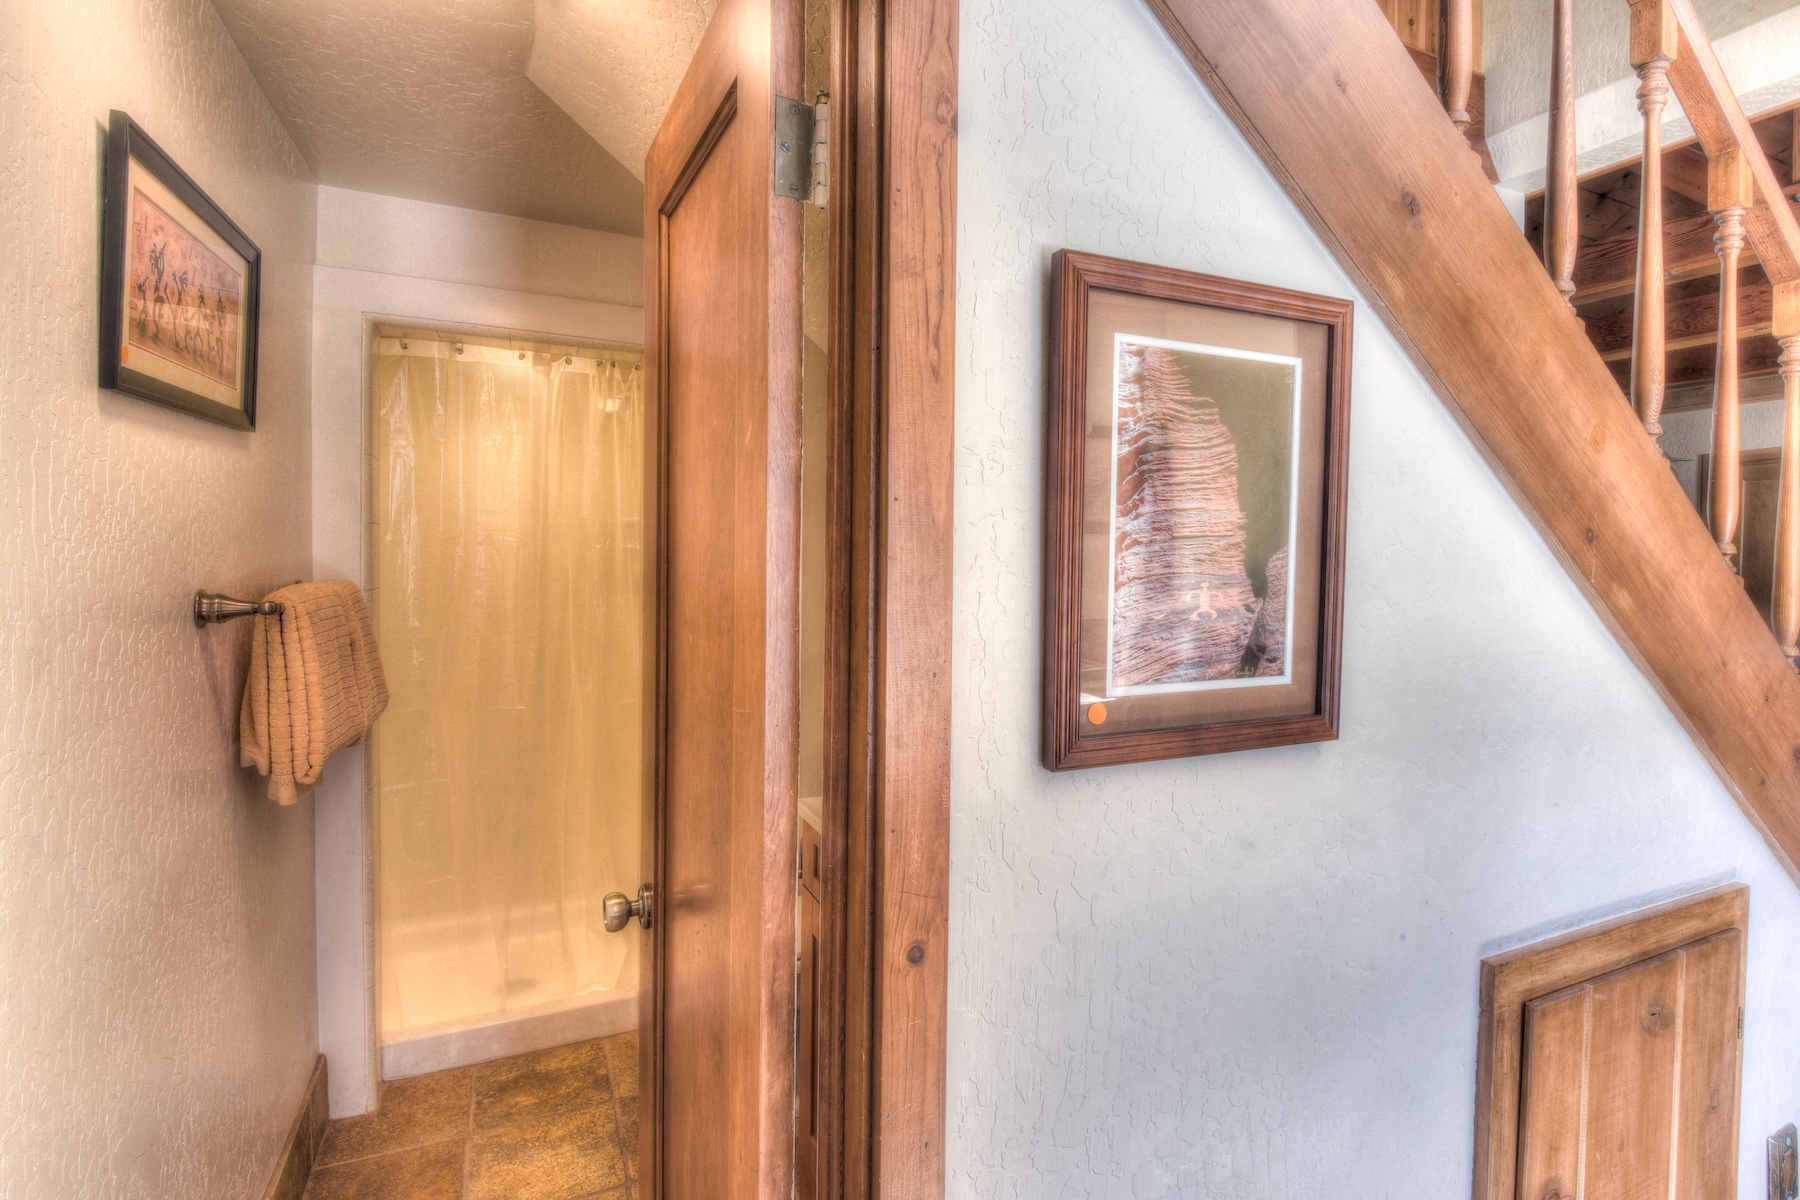 Additional photo for property listing at 798 Northshore Blvd., Kings Beach, CA 798 Northshore Blvd. Kings Beach, California 96143 United States